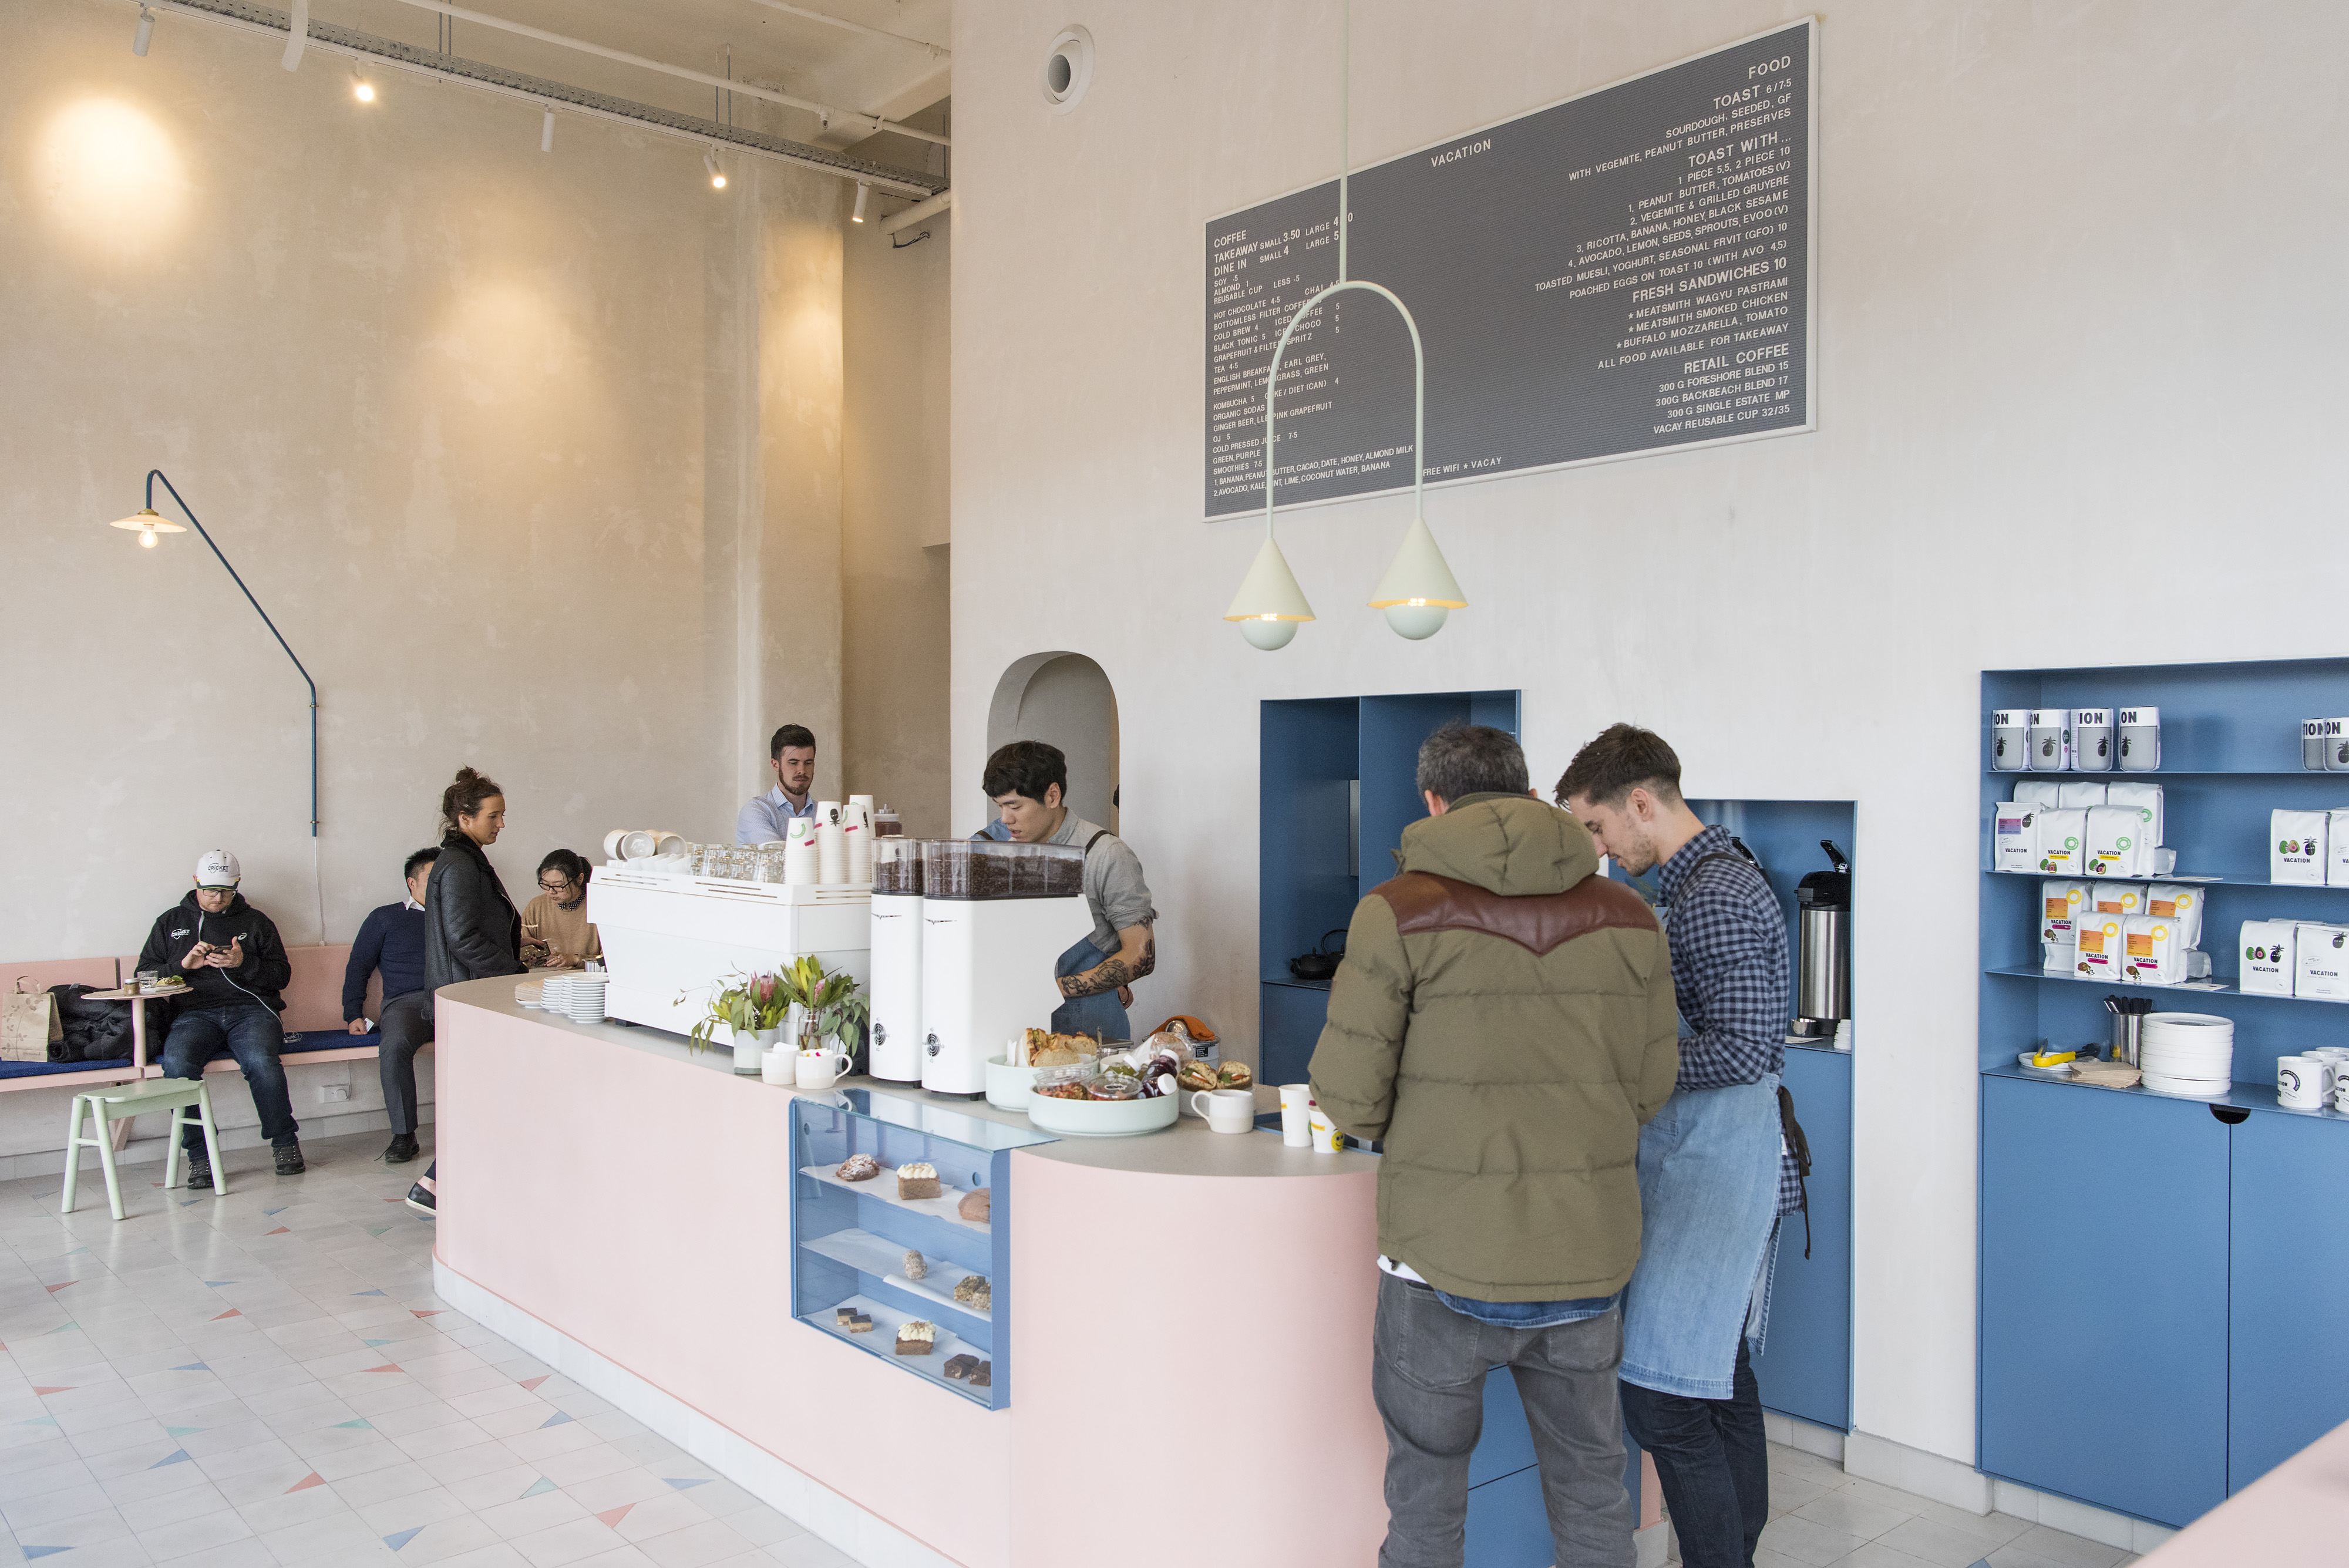 Vacation, a playful, Miami Vice-looking coffee shop in the CBD | Photography by Pete Dillon